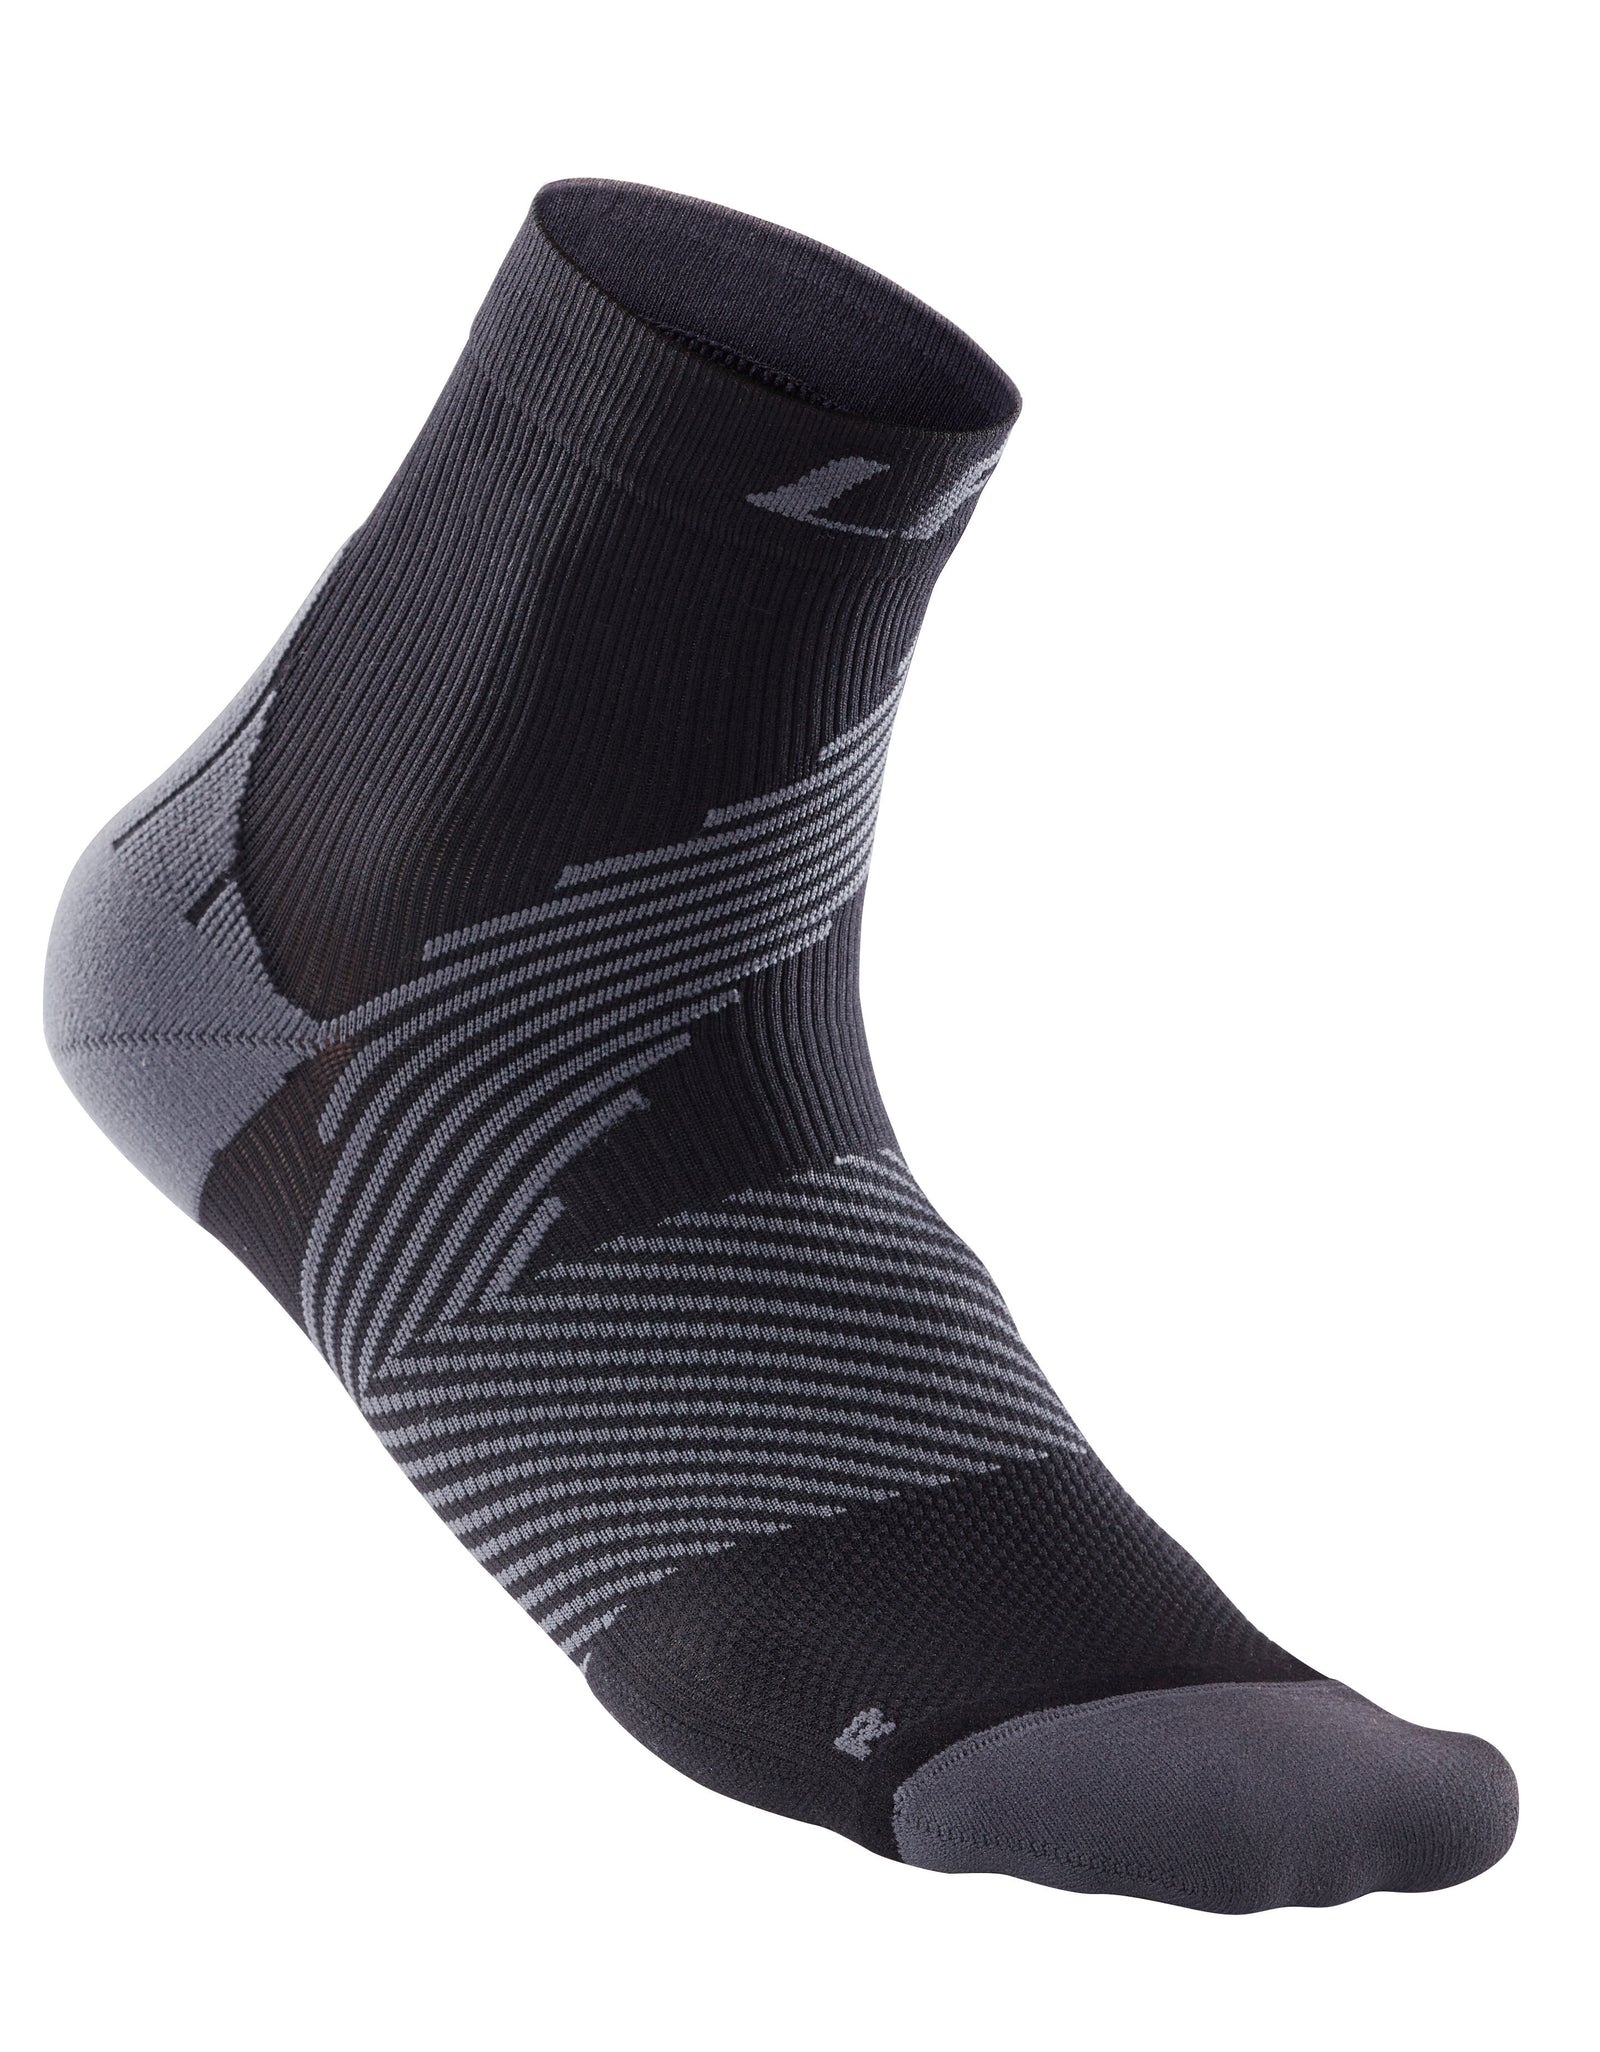 COMPRESSION SOCKS ANKLE SUPPORT SHORT (QUARTER) EMBIOZ